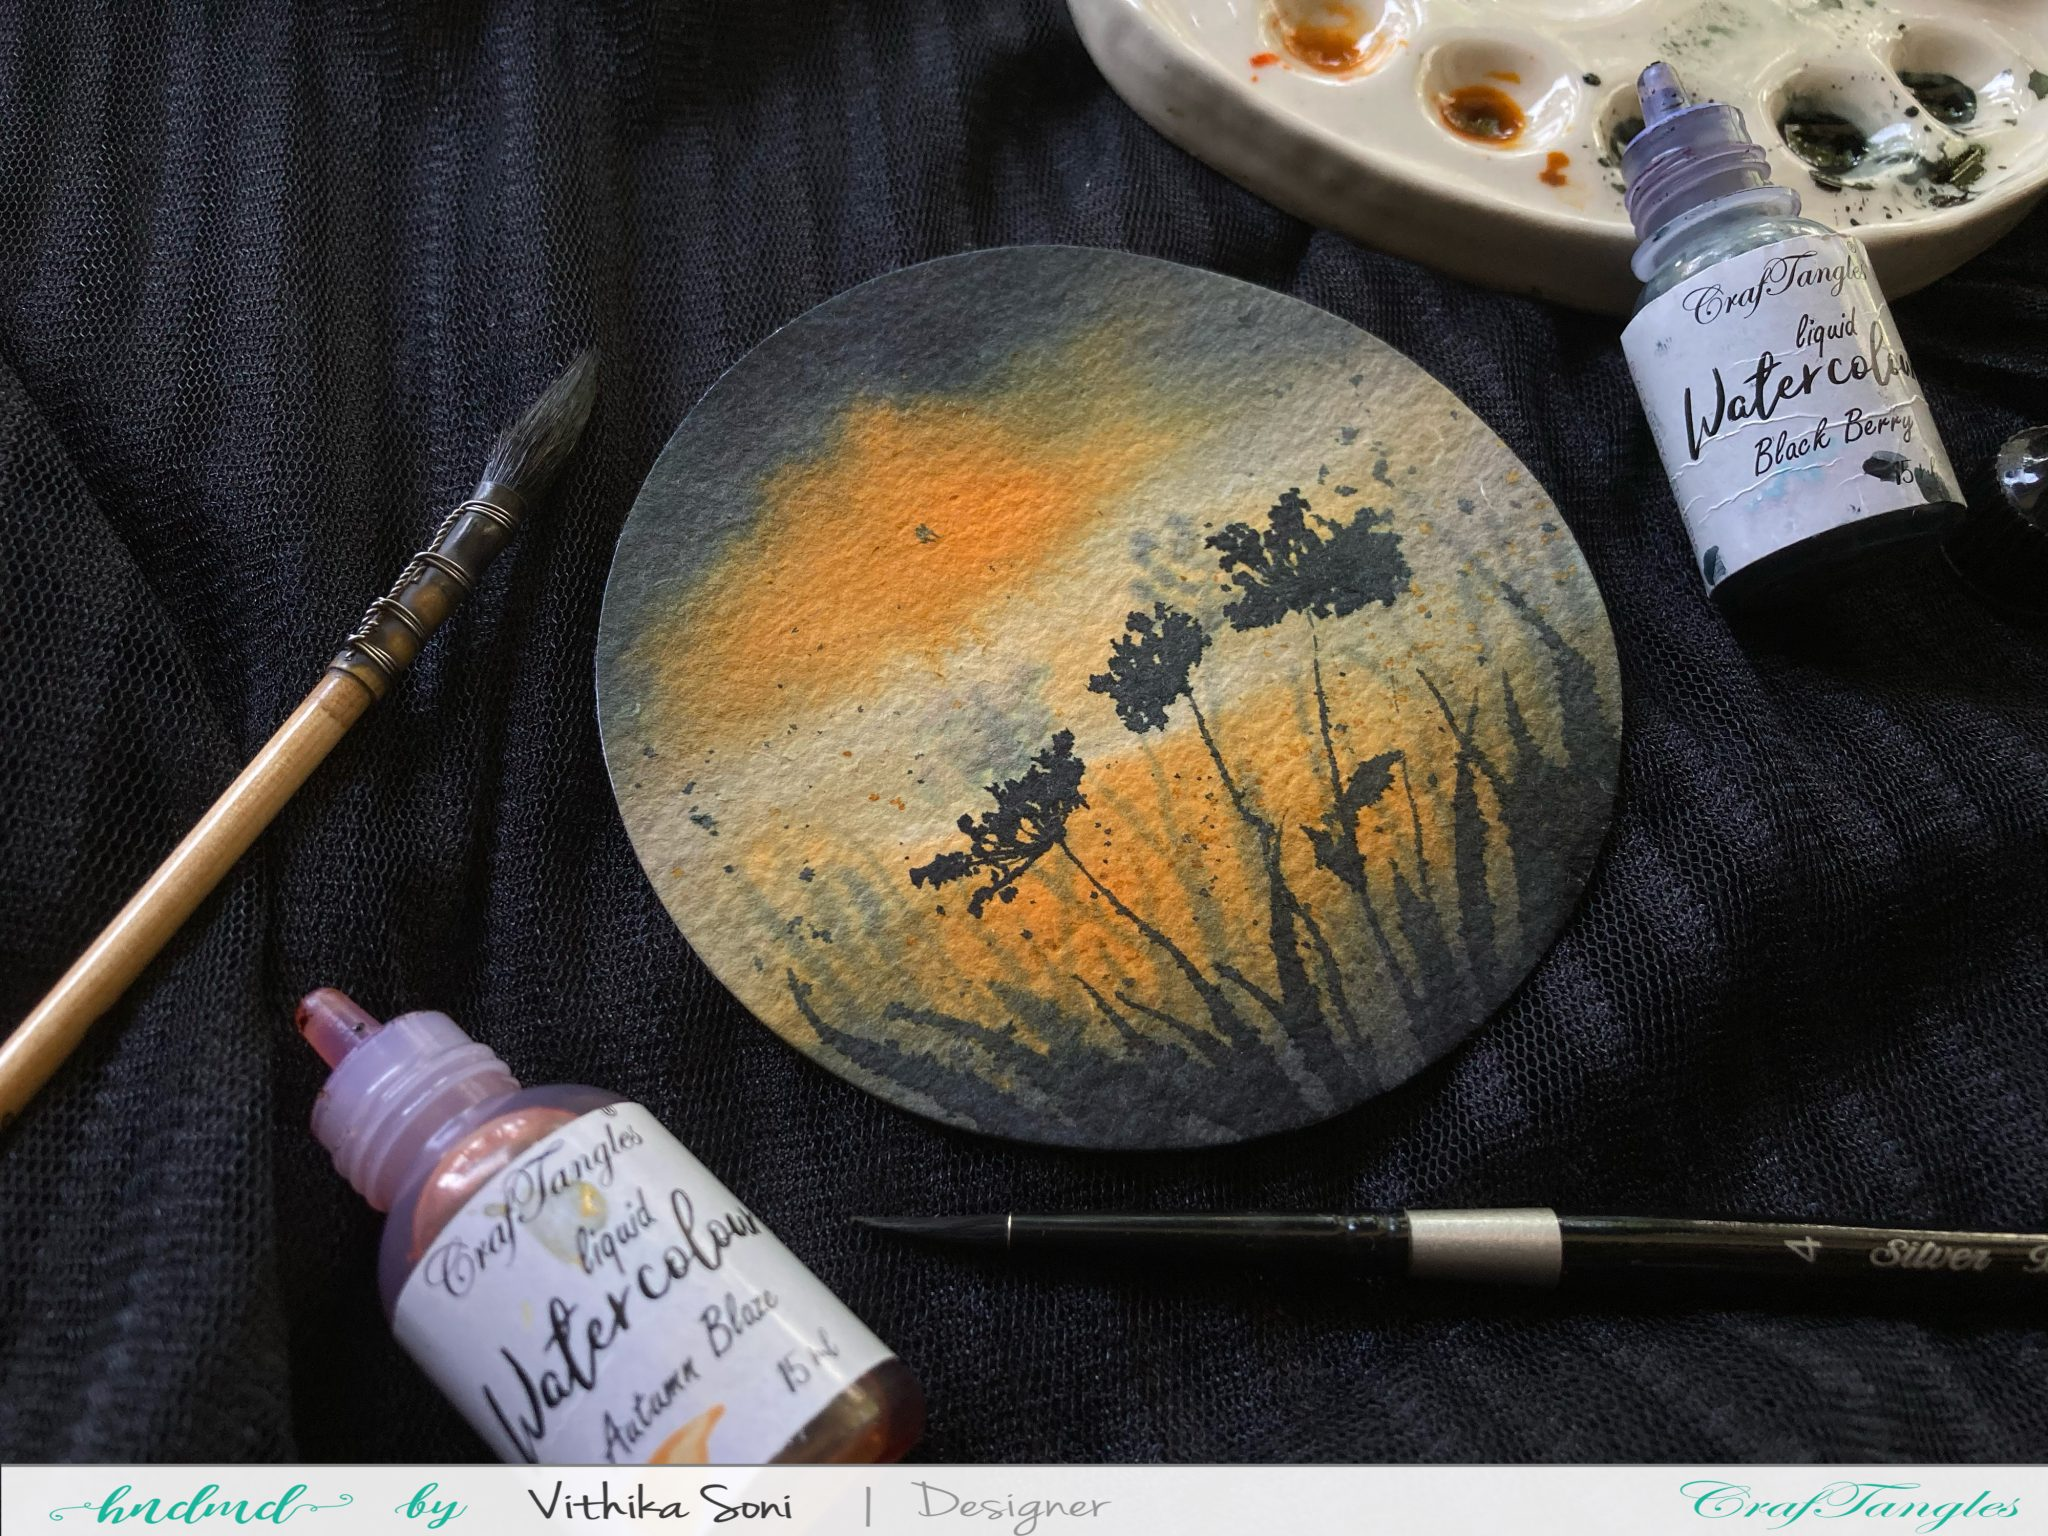 Watercolor tutorial on Round paper 1